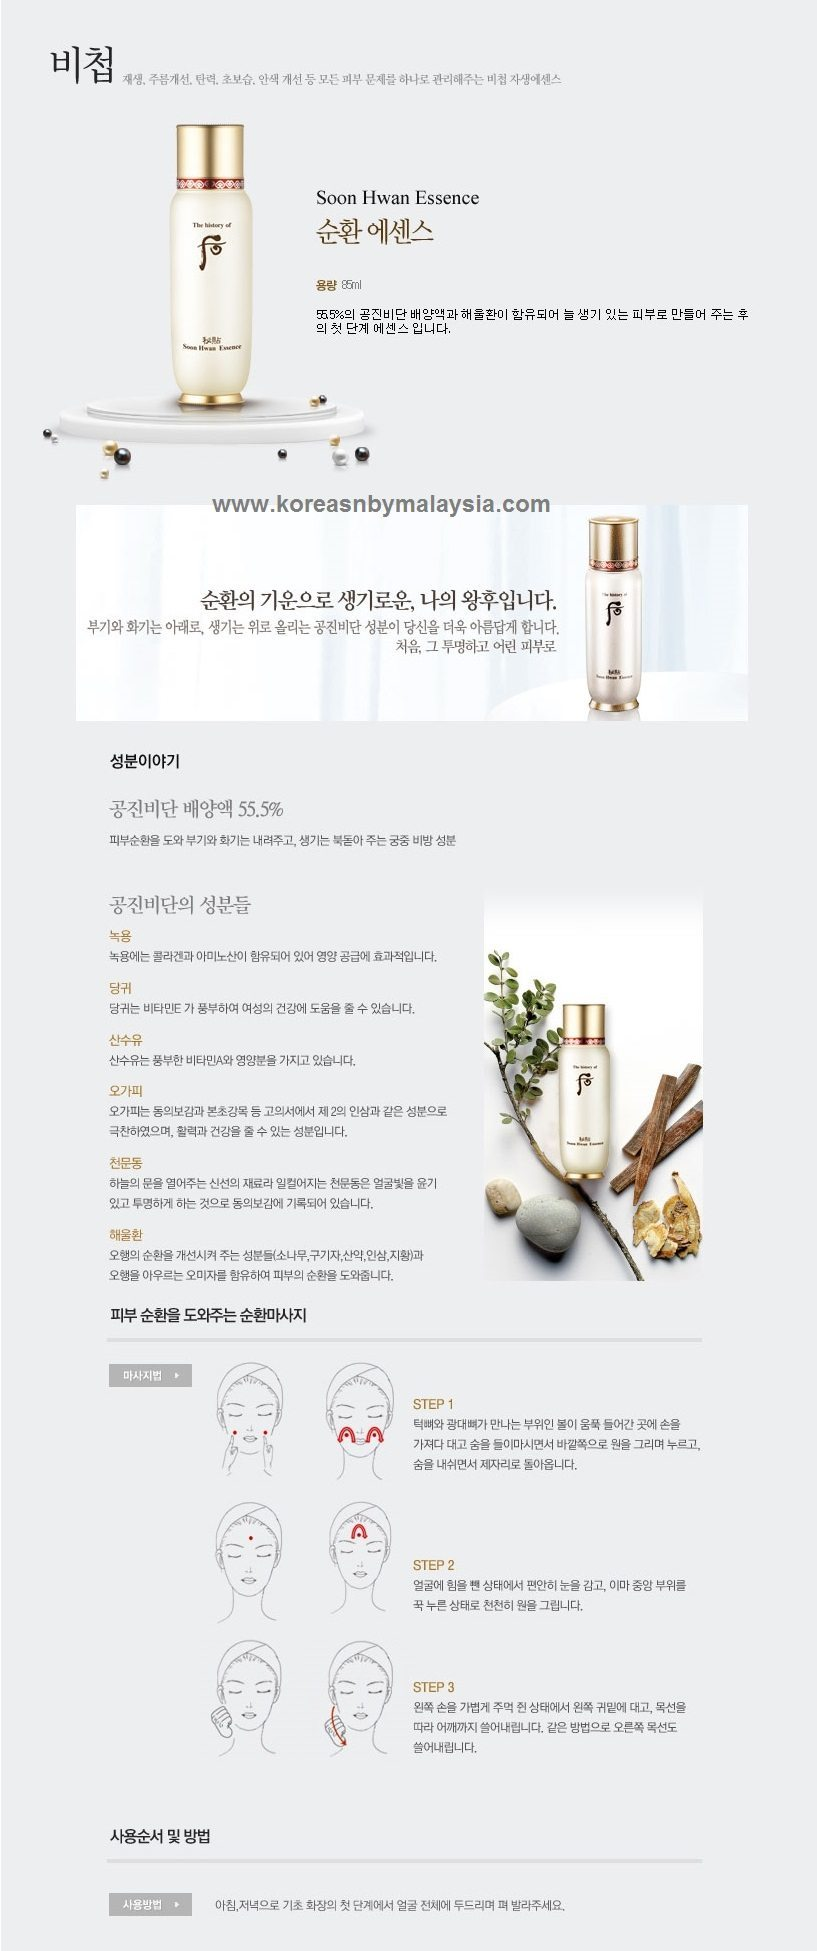 The History of Whoo Bichup Soon Hwan Essence 85 ml